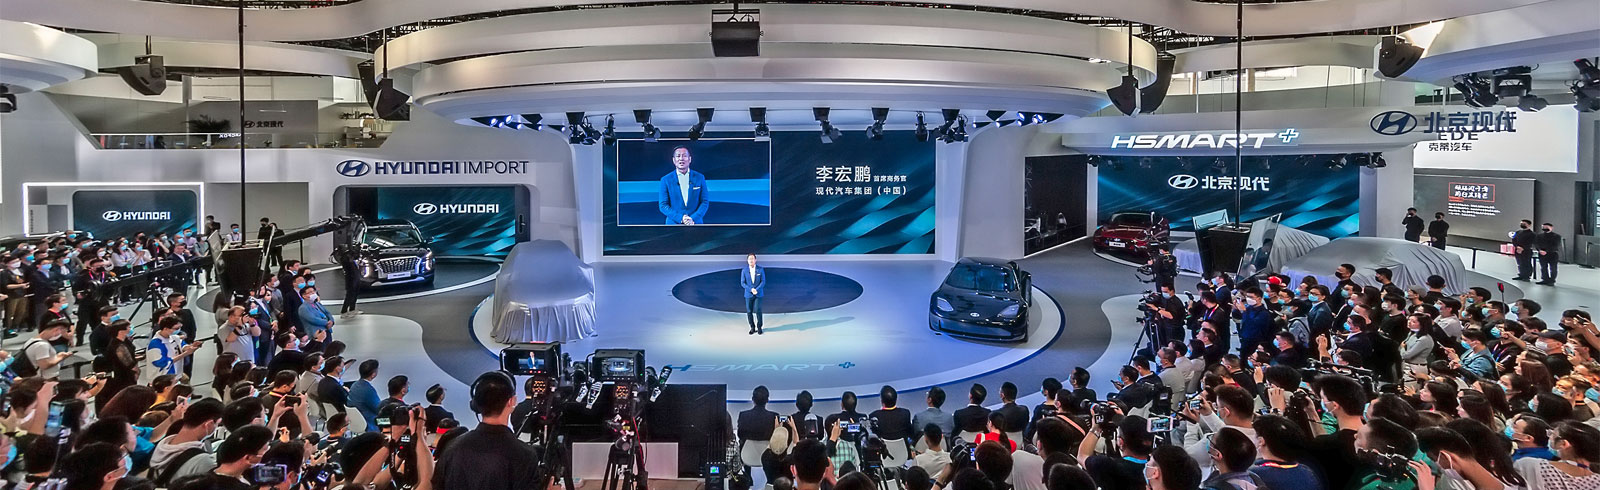 Hyundai unveils its electrification vision for transforming into a Smart Mobility Solution Provider